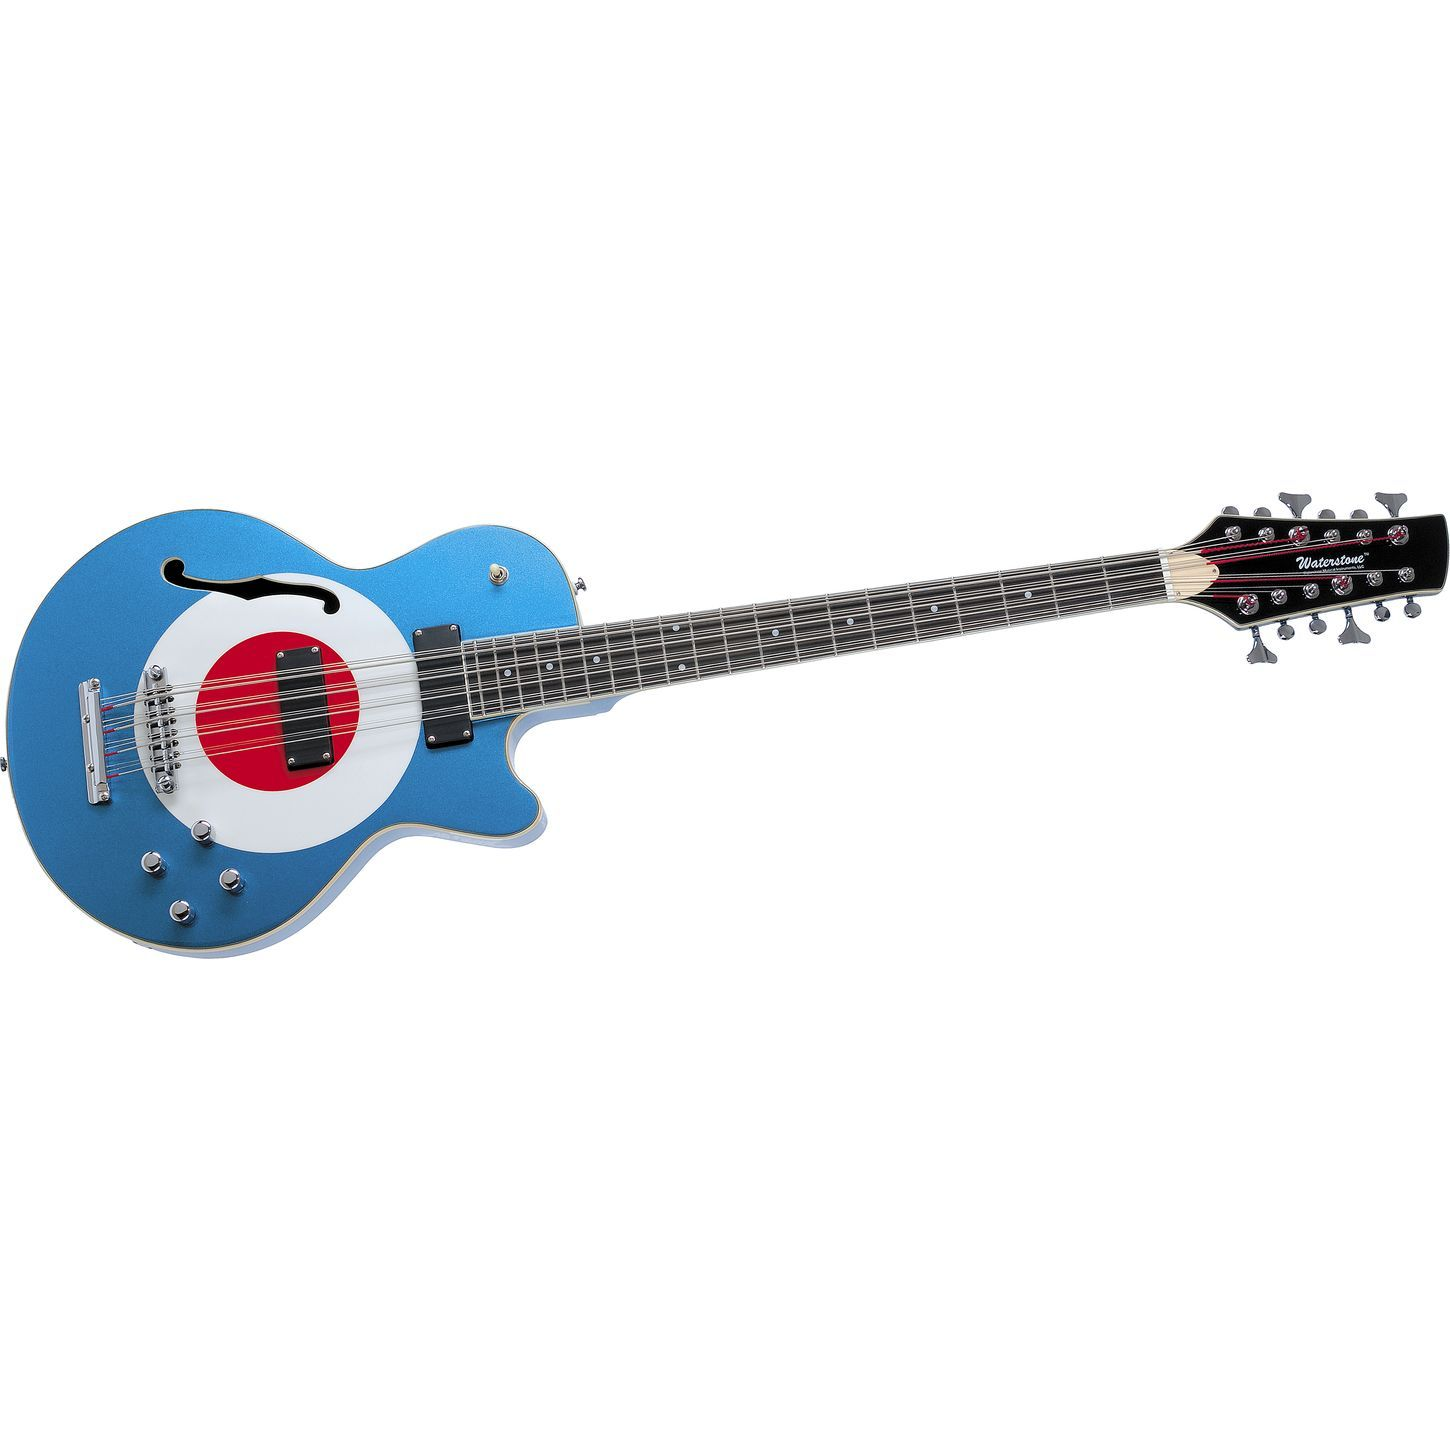 Waterstone tom petersson signature 12 string bass cheaptrick waterstone tom petersson signature 12 string bass cheaptrick asfbconference2016 Images